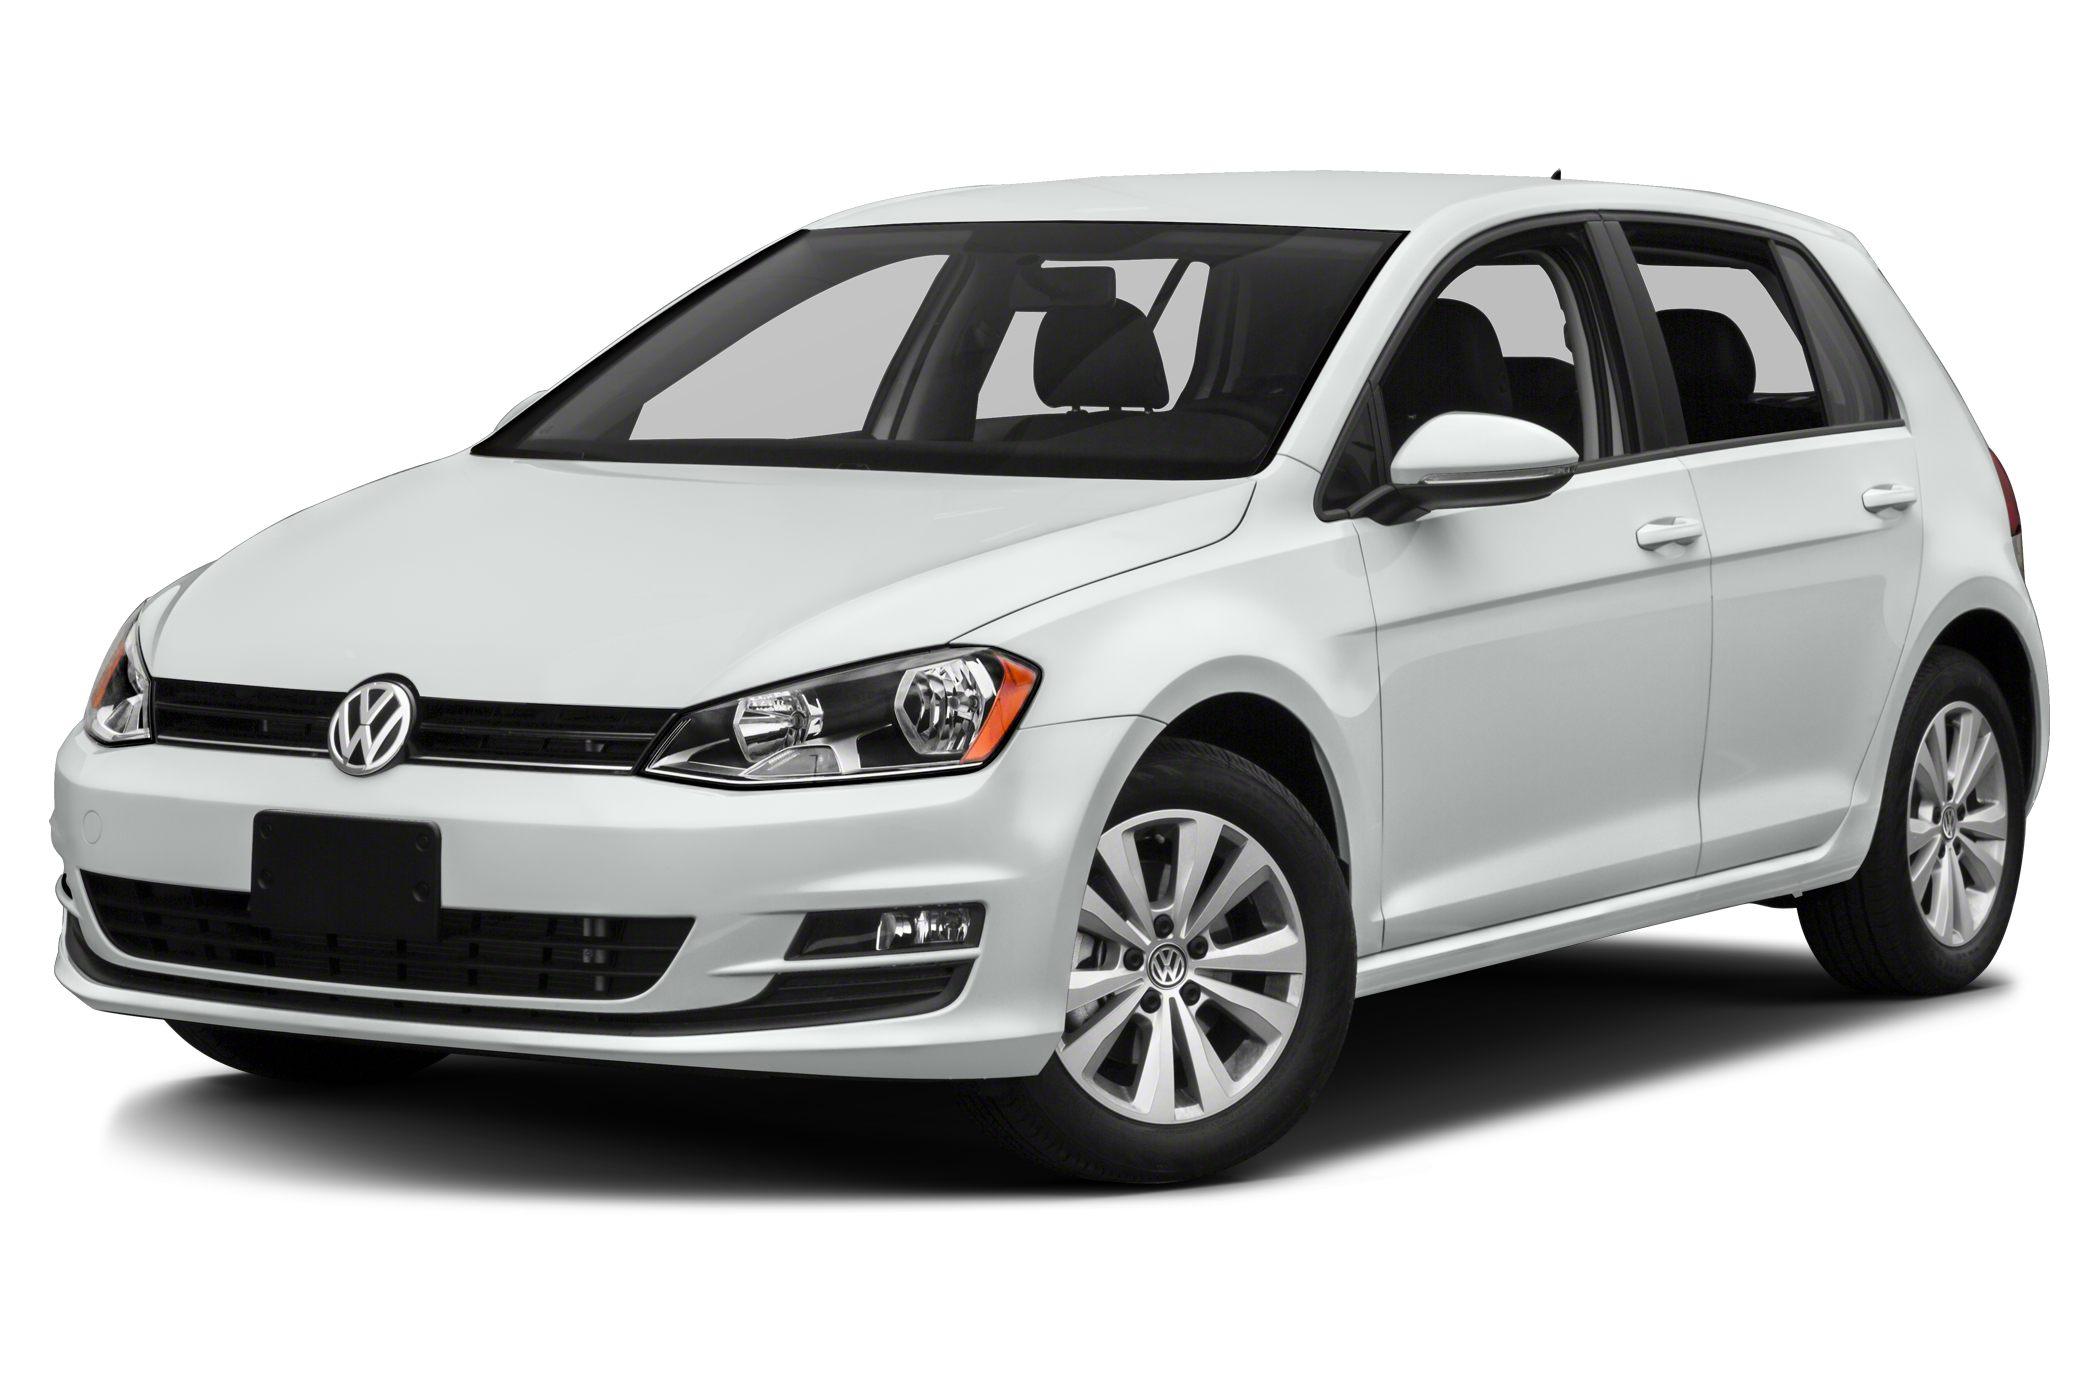 2017 Volkswagen Golf Photos